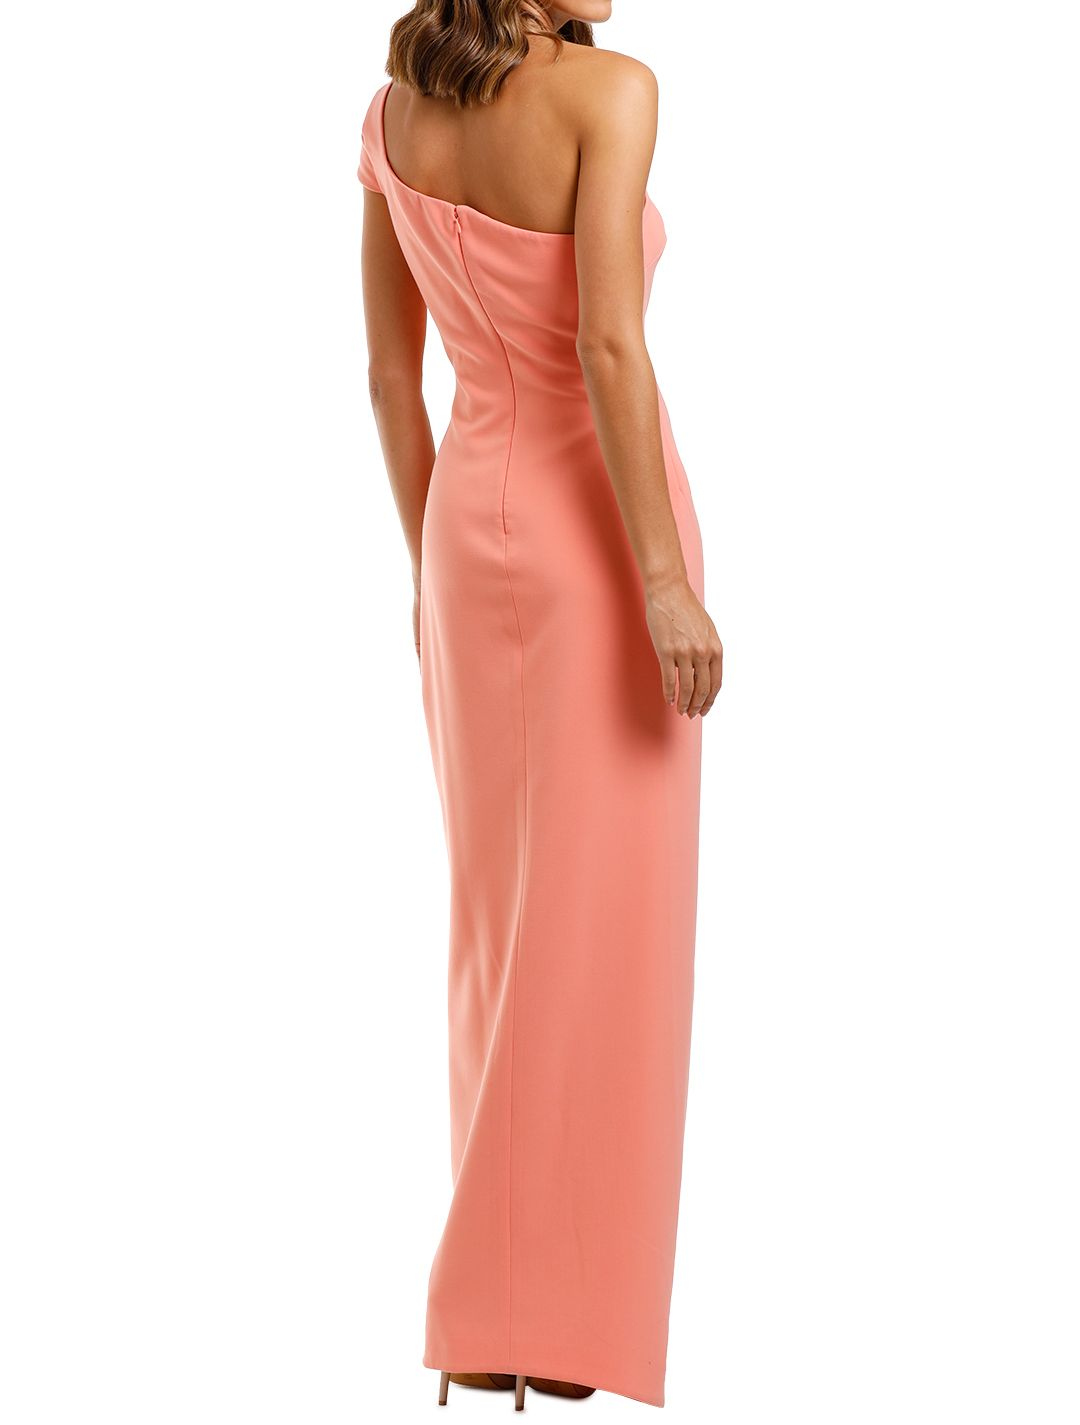 Likely NYC Maxson Gown Apricot Bodycon